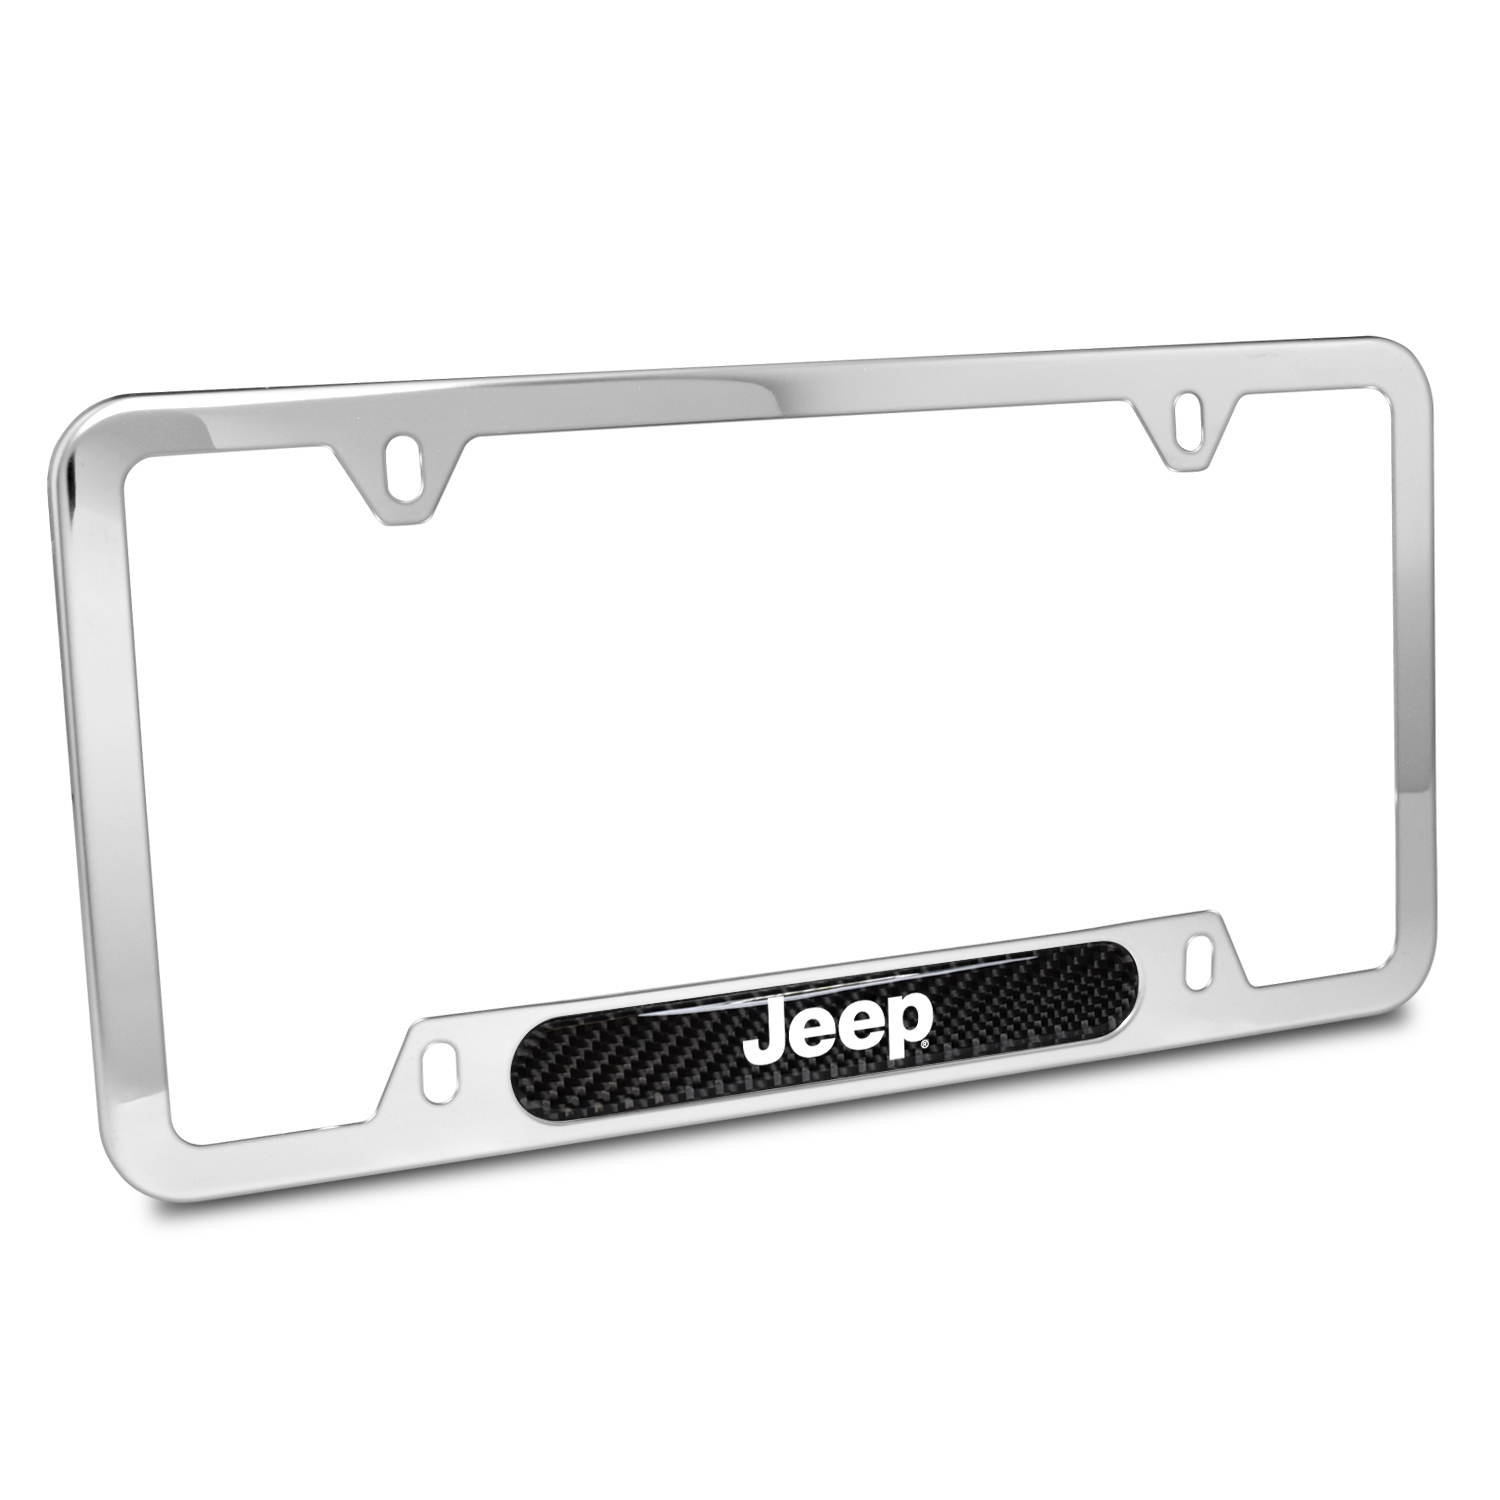 Jeep Real Carbon Fiber Nameplate Chrome Stainless Steel License Plate Frame